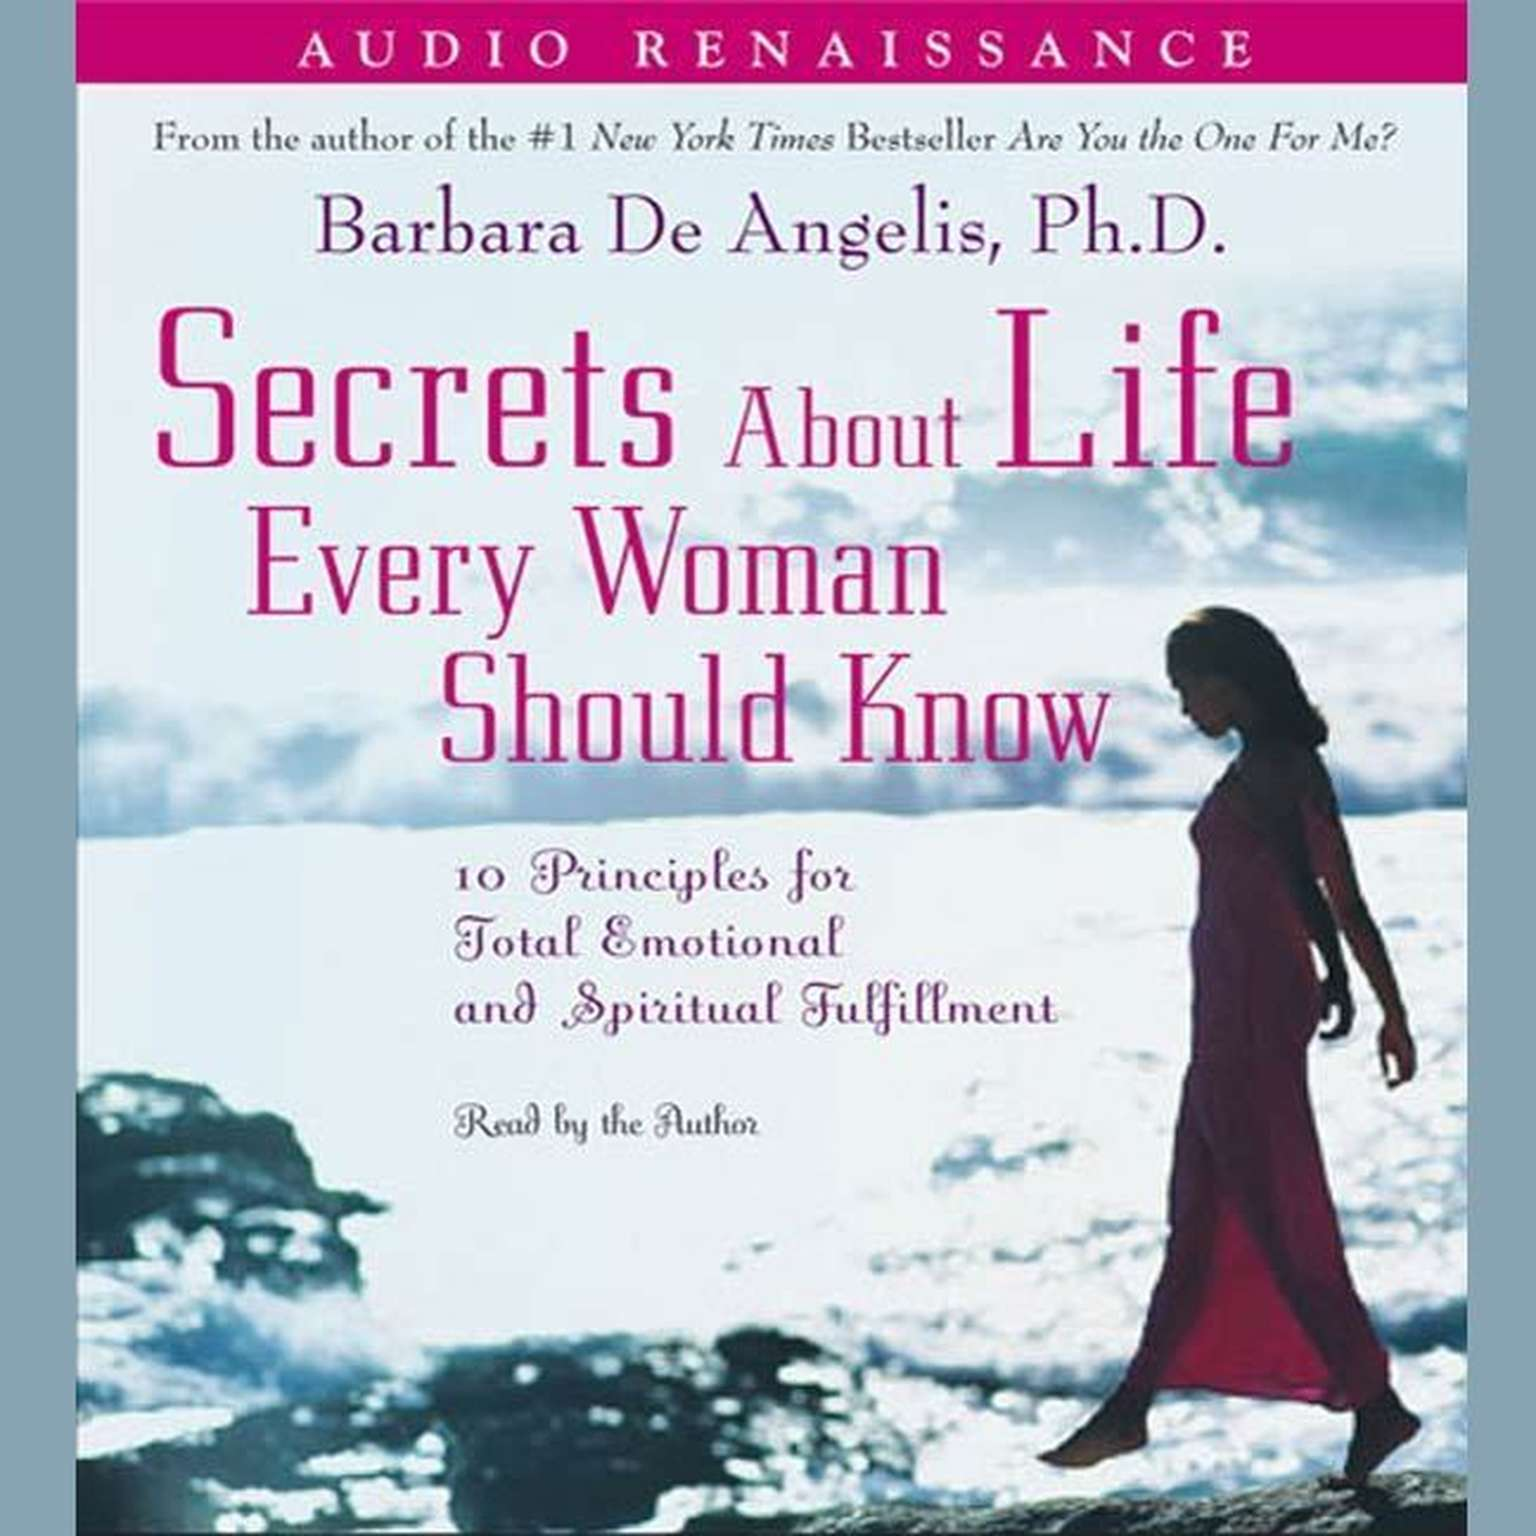 Printable Secrets About Life Every Woman Should Know: 10 Principles for Emotional and Spiritual Fulfillment Audiobook Cover Art